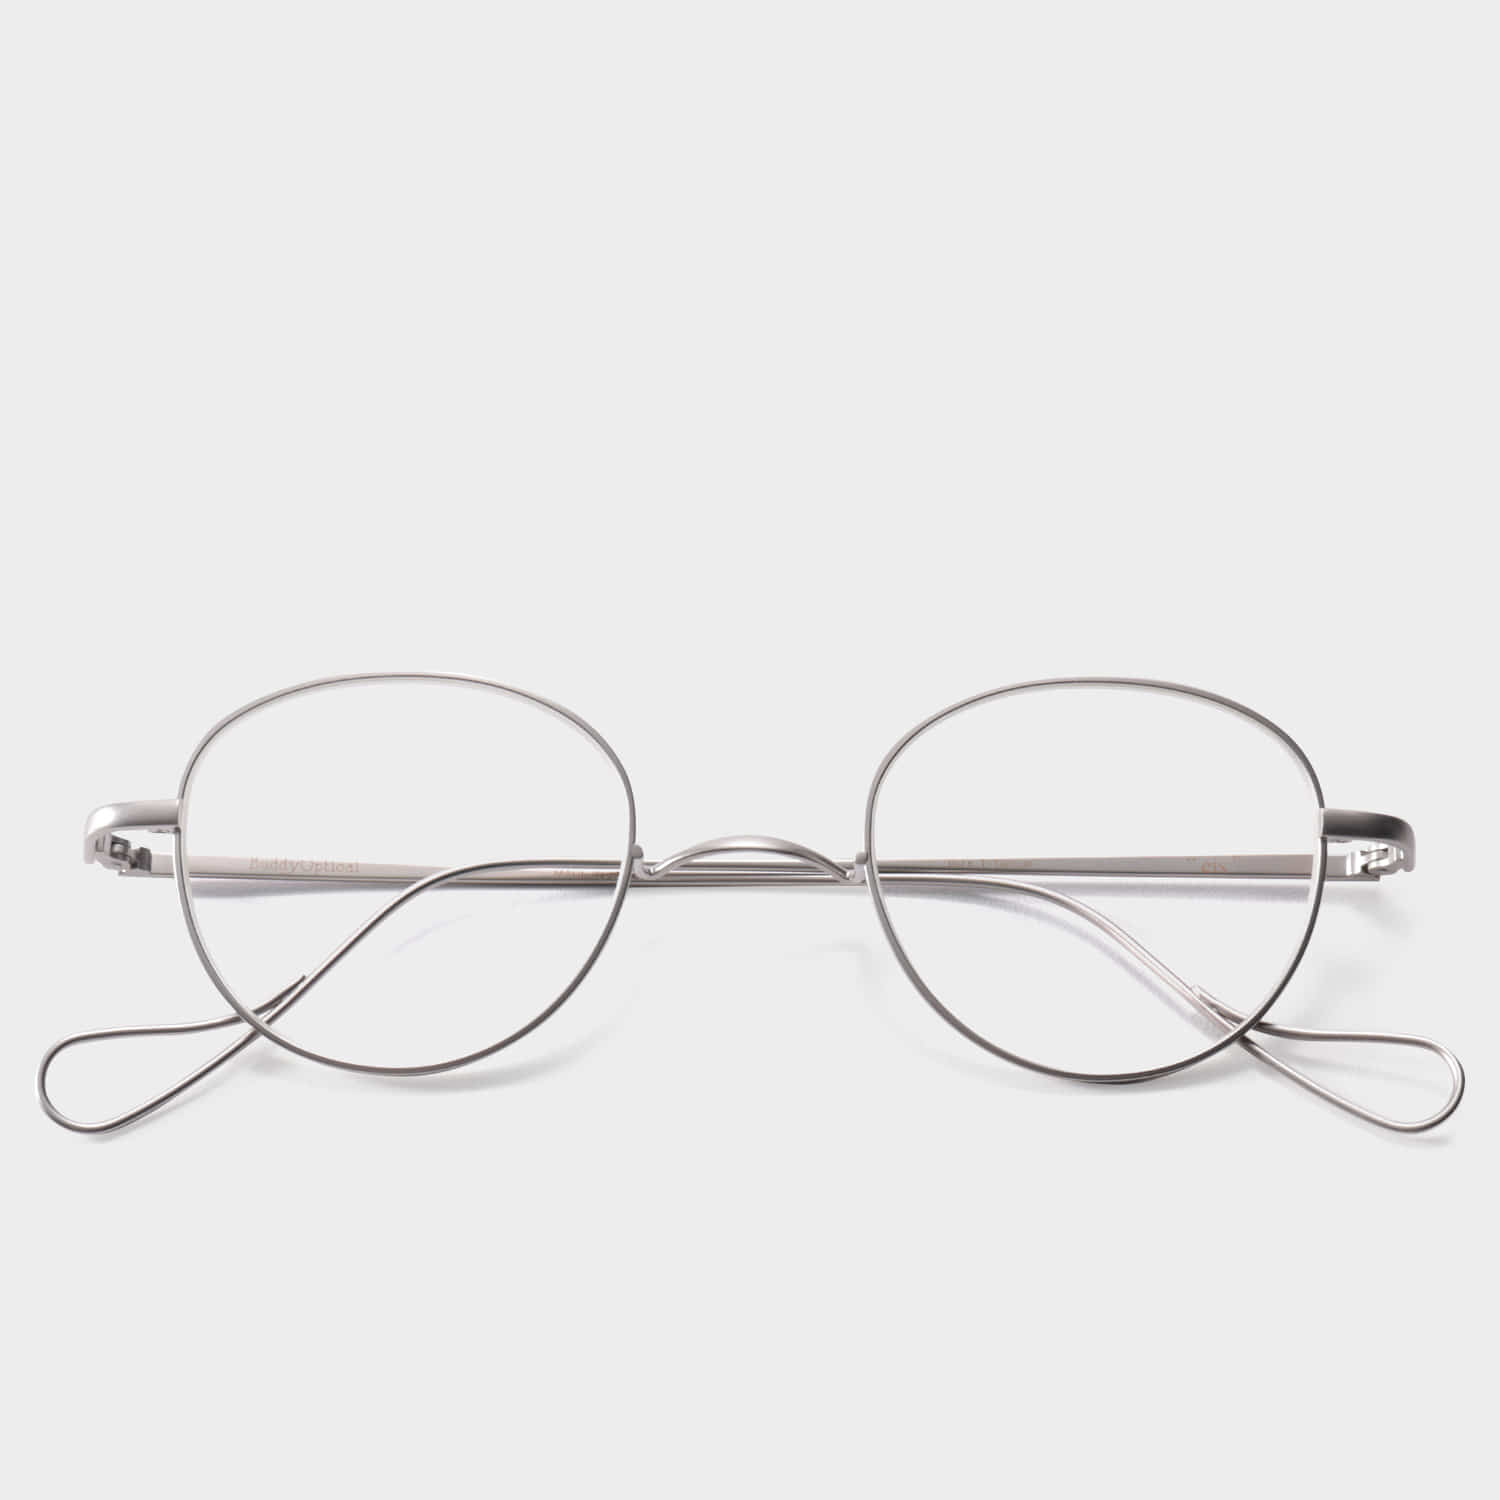 [버디옵티컬안경] eis MATTE SILVER (Buddy Optical)